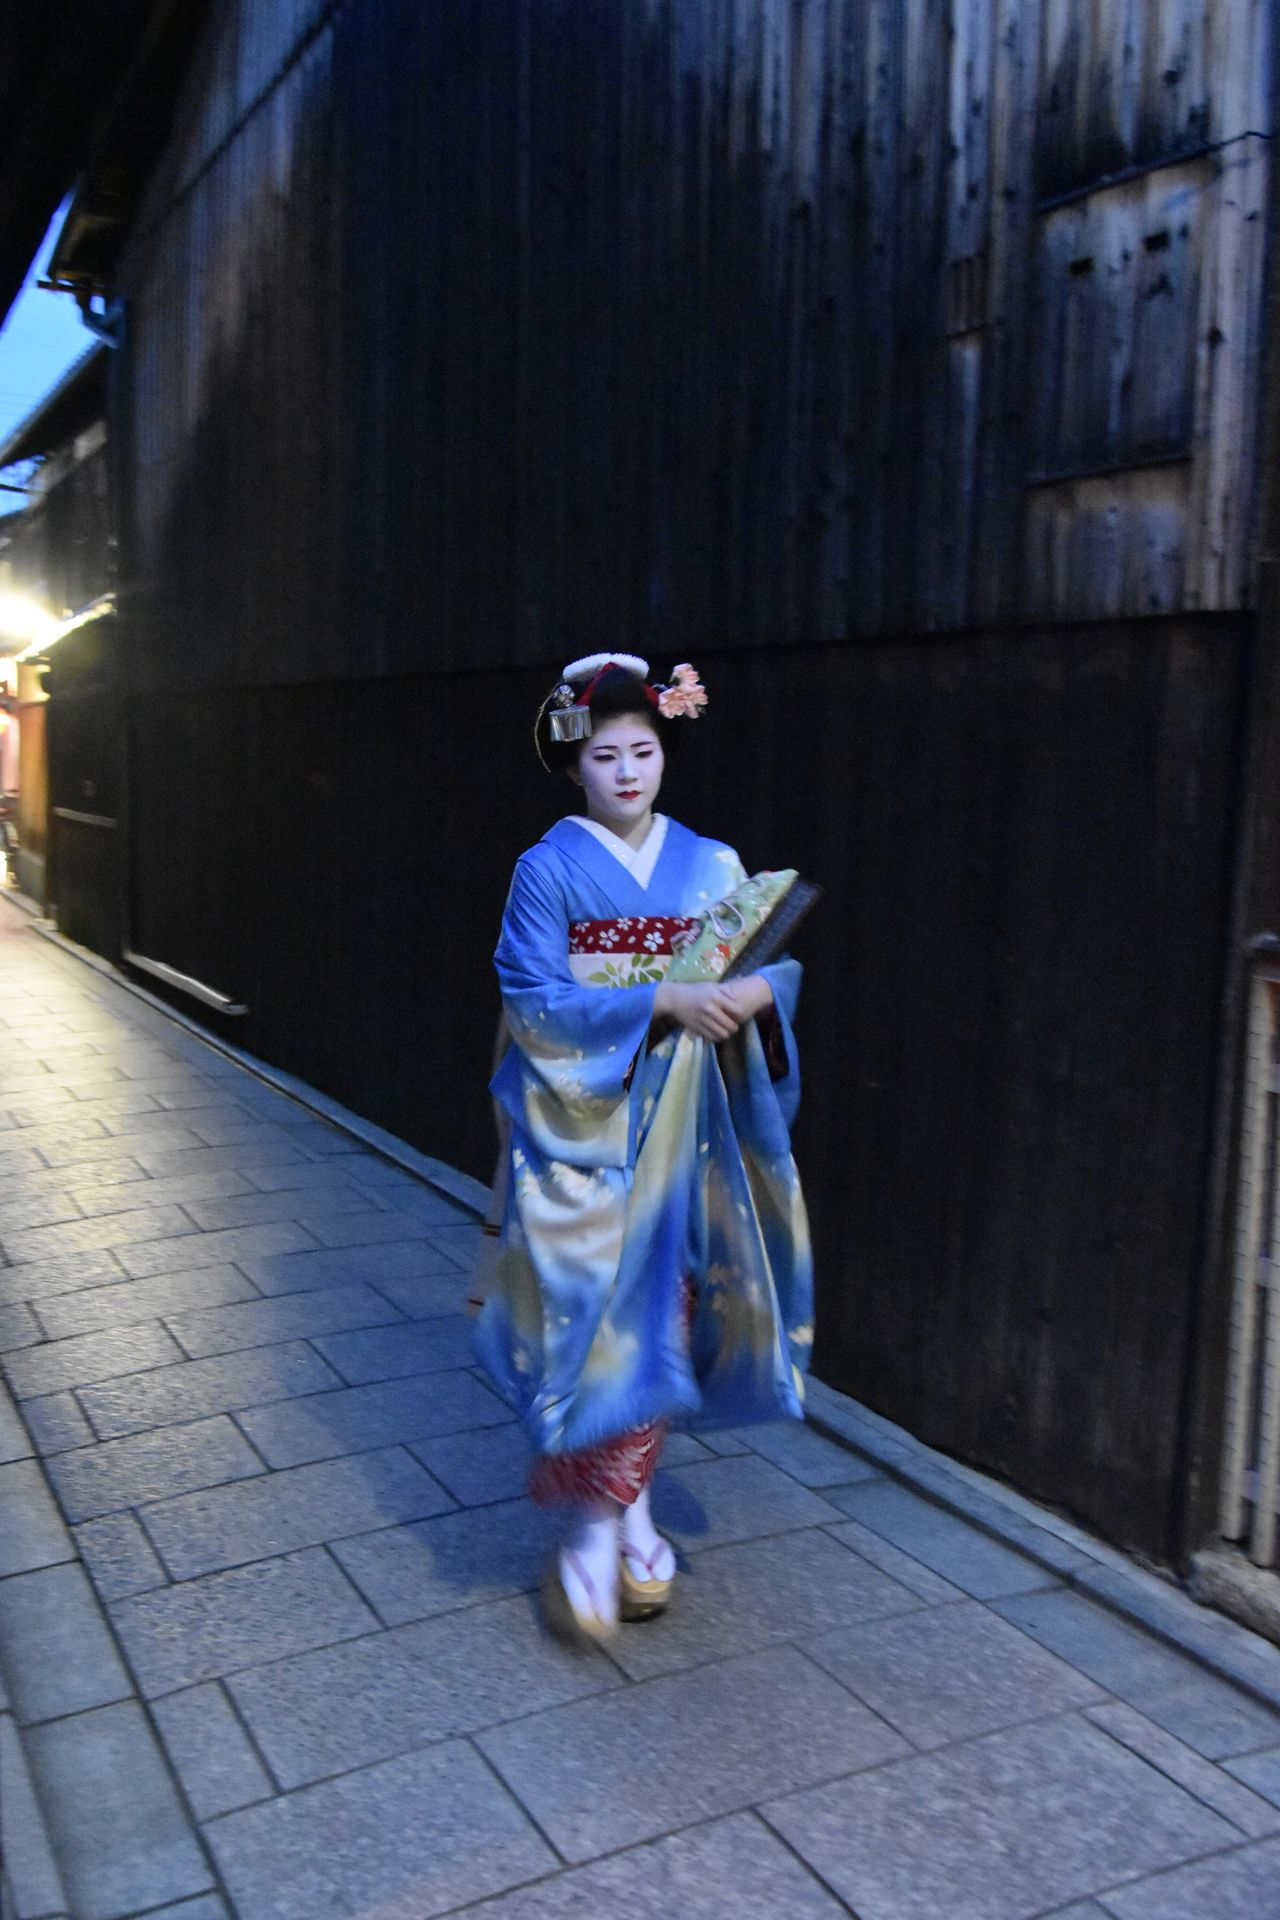 Kyoto Real People Portrait Kyoto,japan Geisha Geishagirl Geishas Maiko Maikosan Gion Gion Kyoto Geisha District Geisha At Night The Street Photographer The Street Photographer - 2017 EyeEm Awards The Portraitist - 2017 EyeEm Awards The Portraitist - 2017 EyeEm Awards